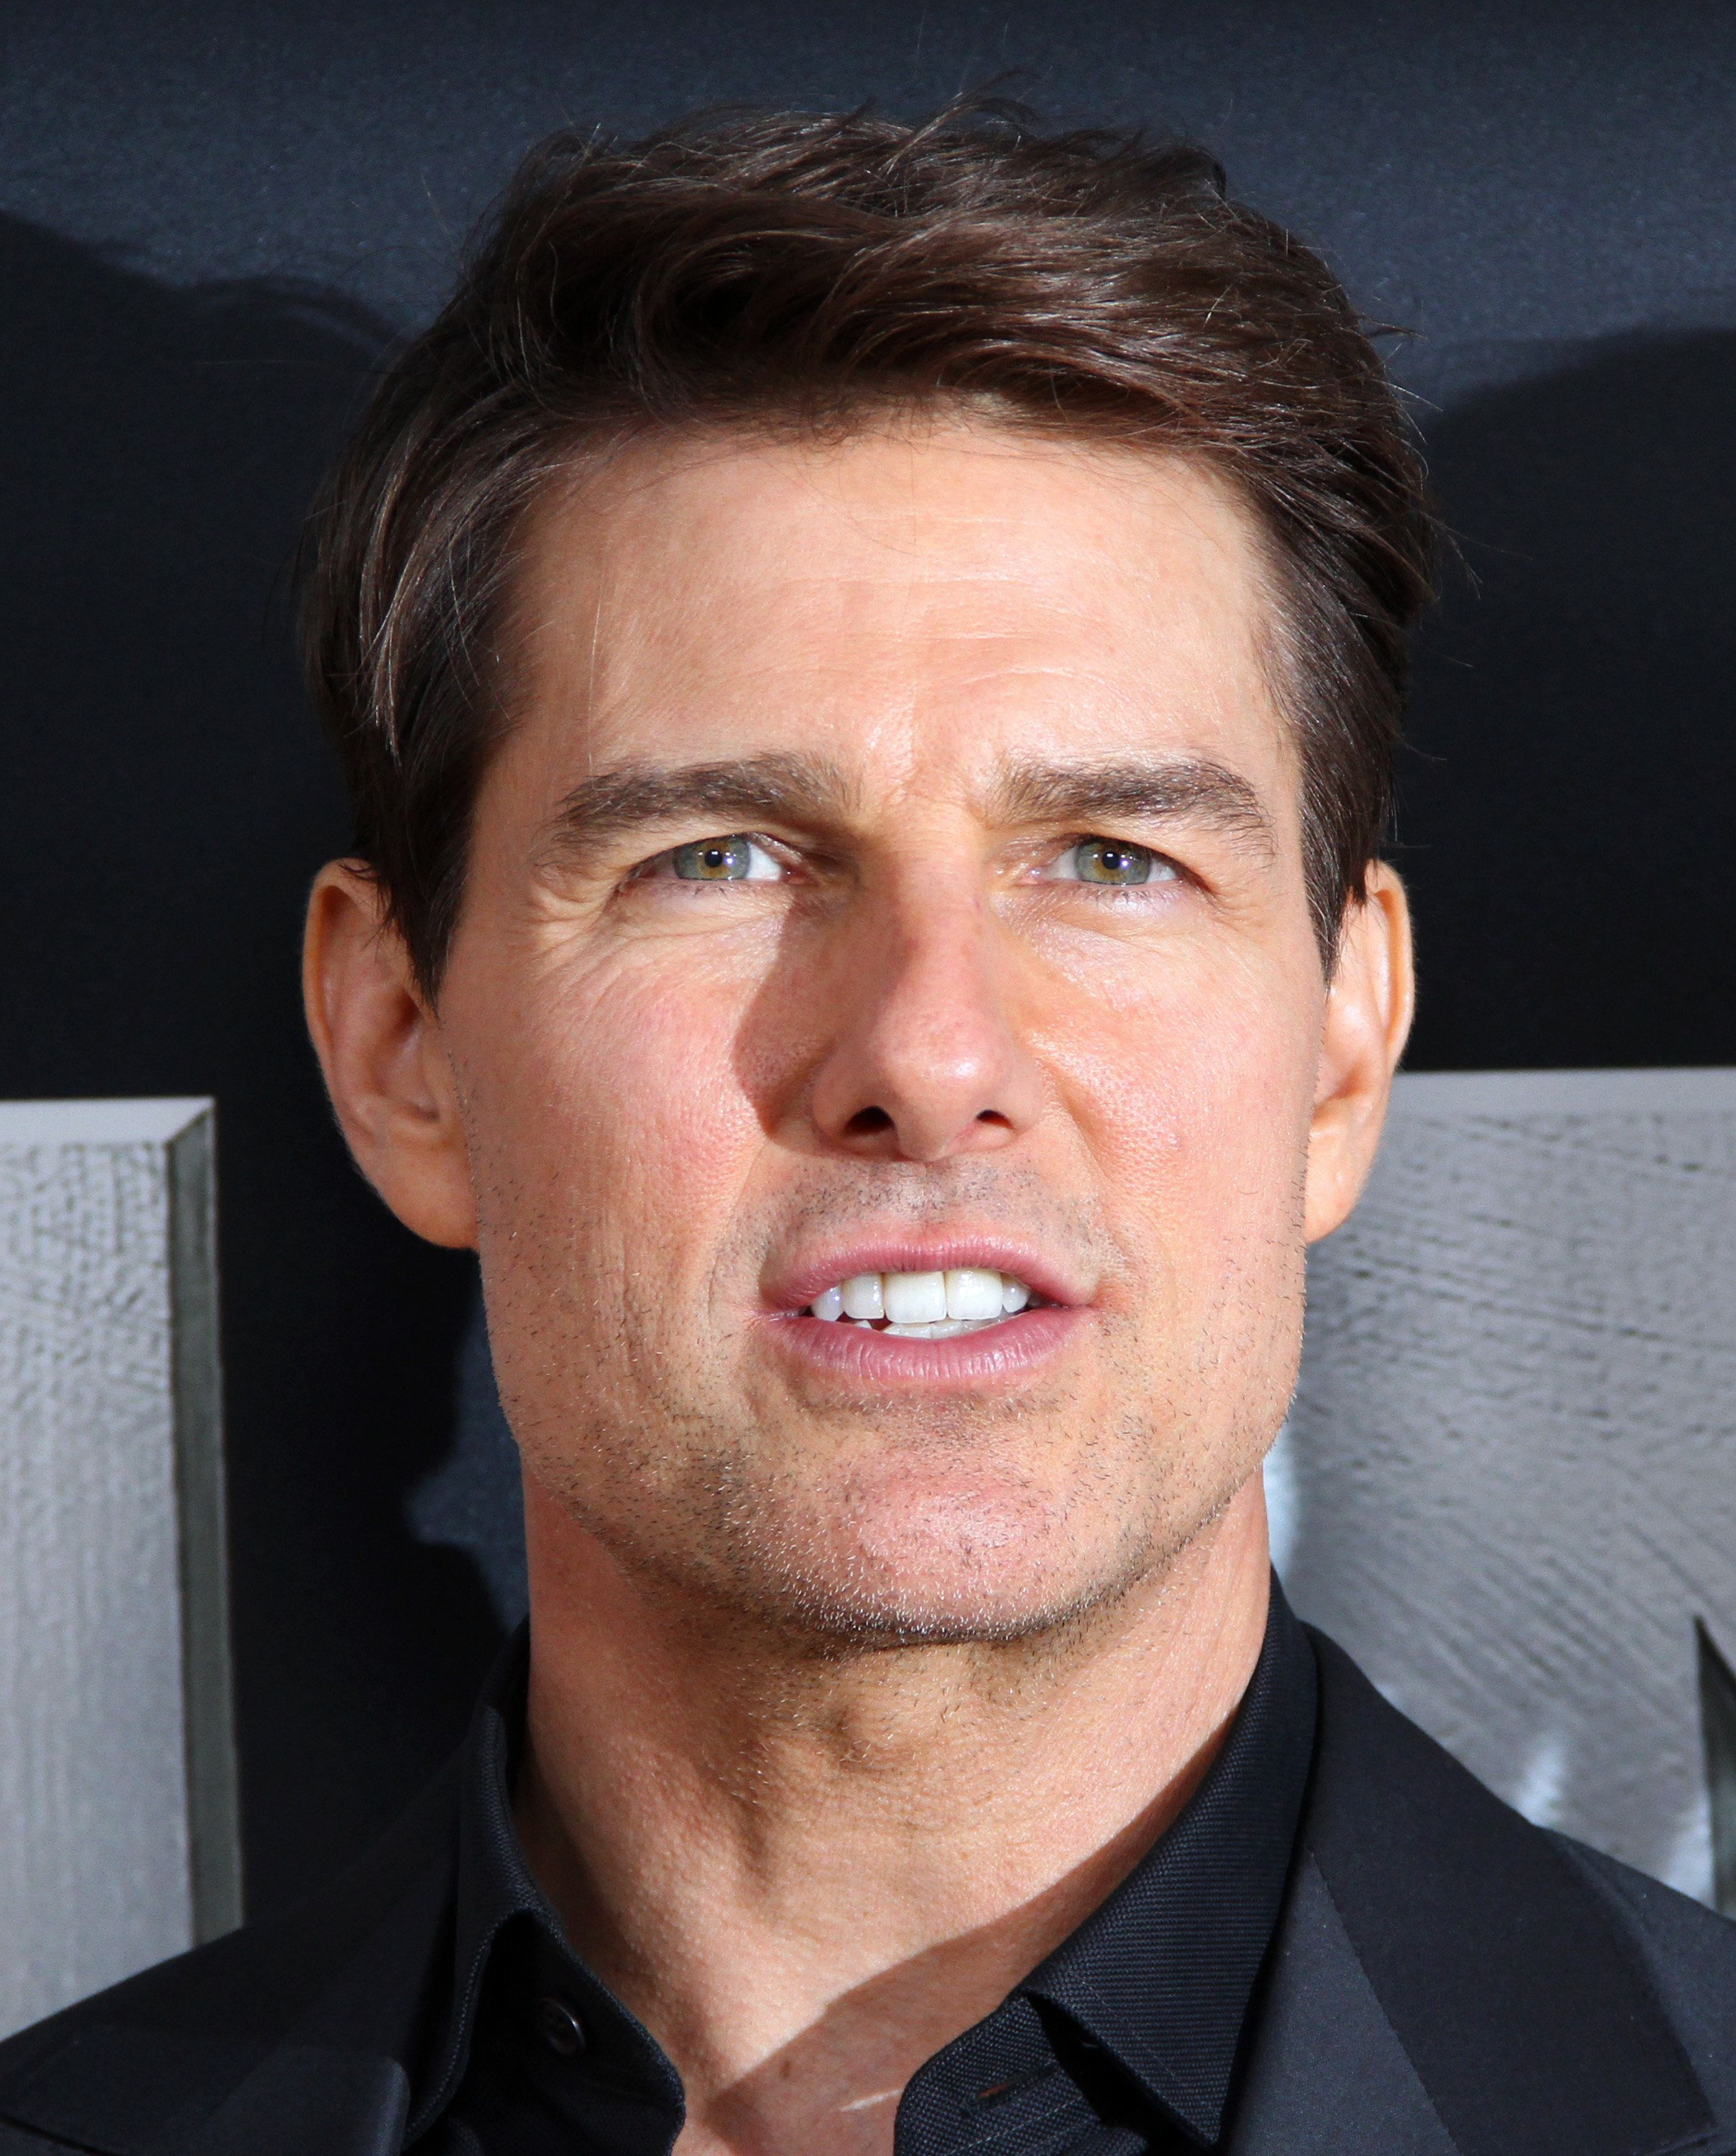 New York Ny June  Tom Cruise Attends The Mummy Fan